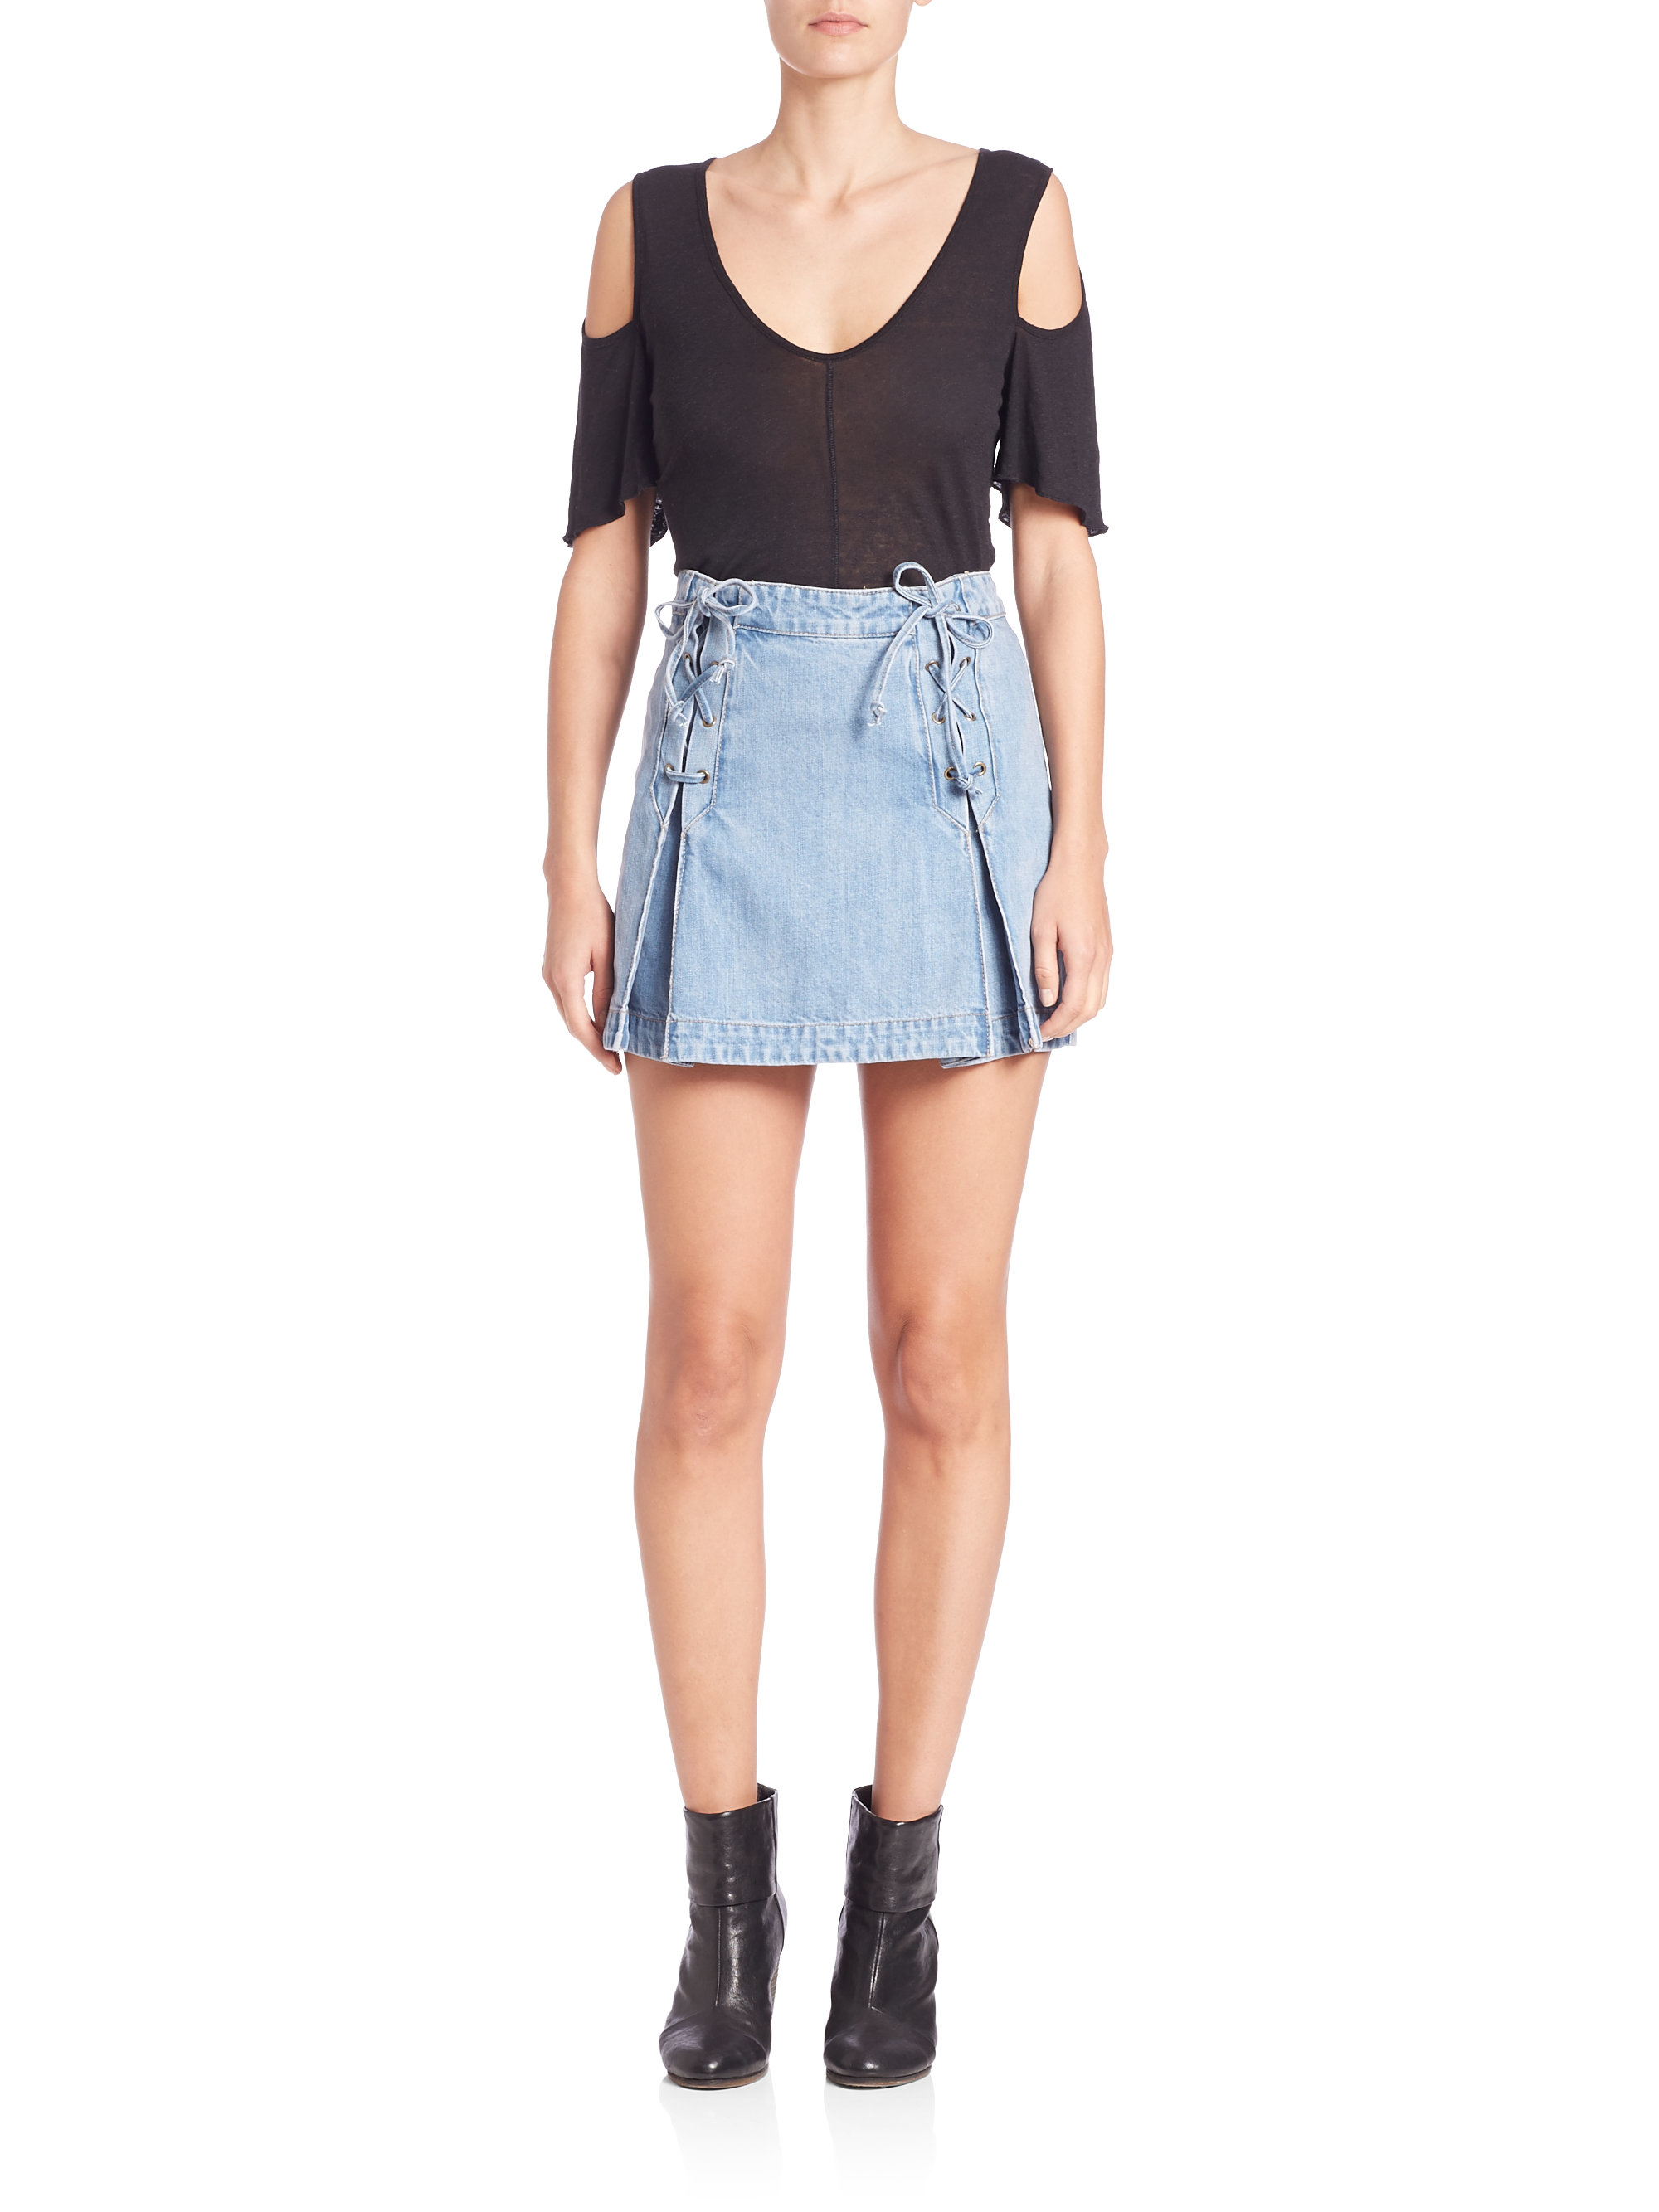 Free people Denim Lace-up Mini Skirt in Blue